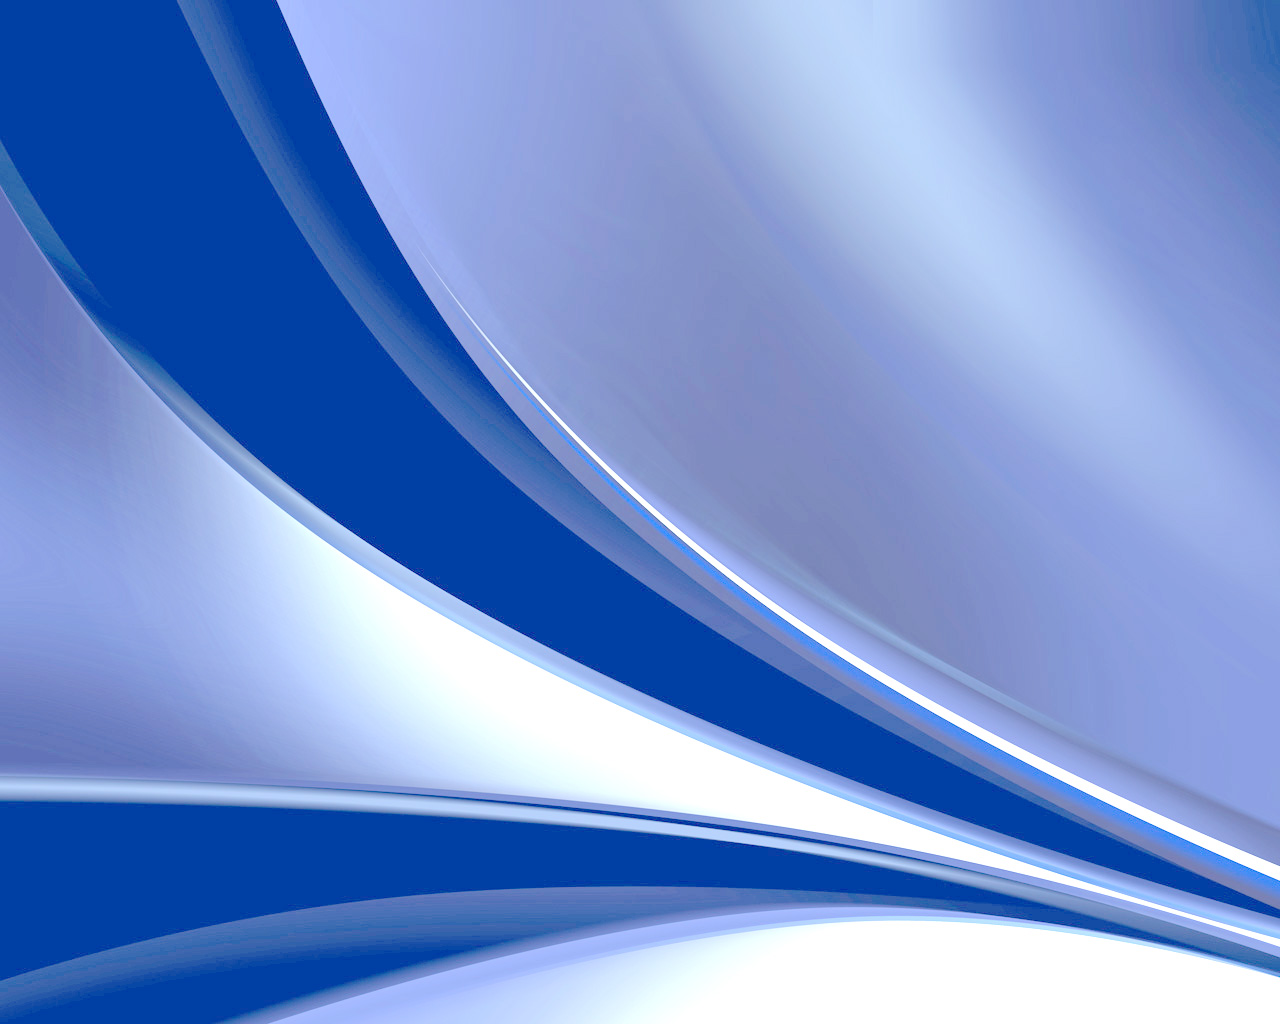 Blue Abstract Powerpoint